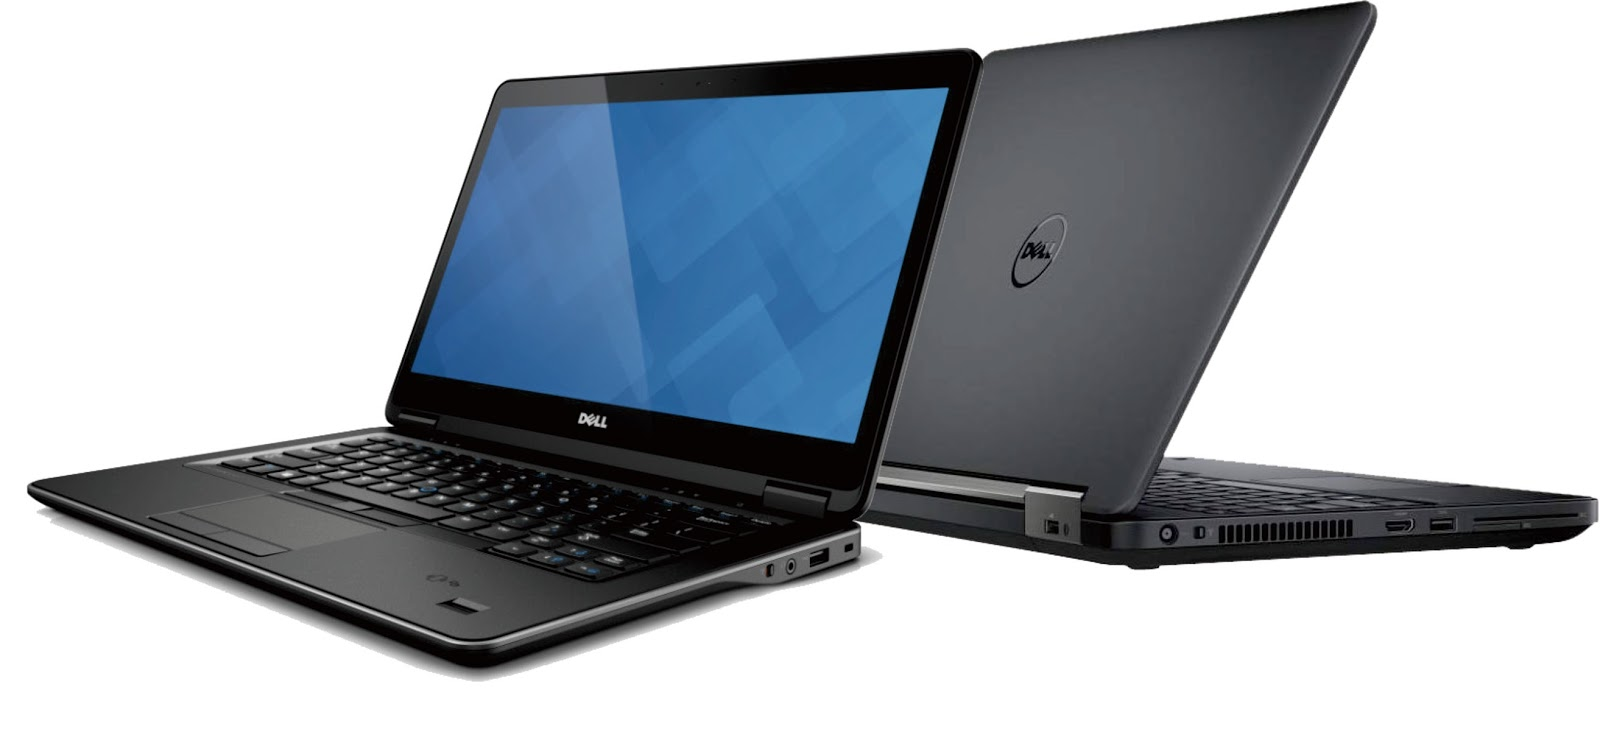 dell latitude e5440 drivers for windows 7 64 bit